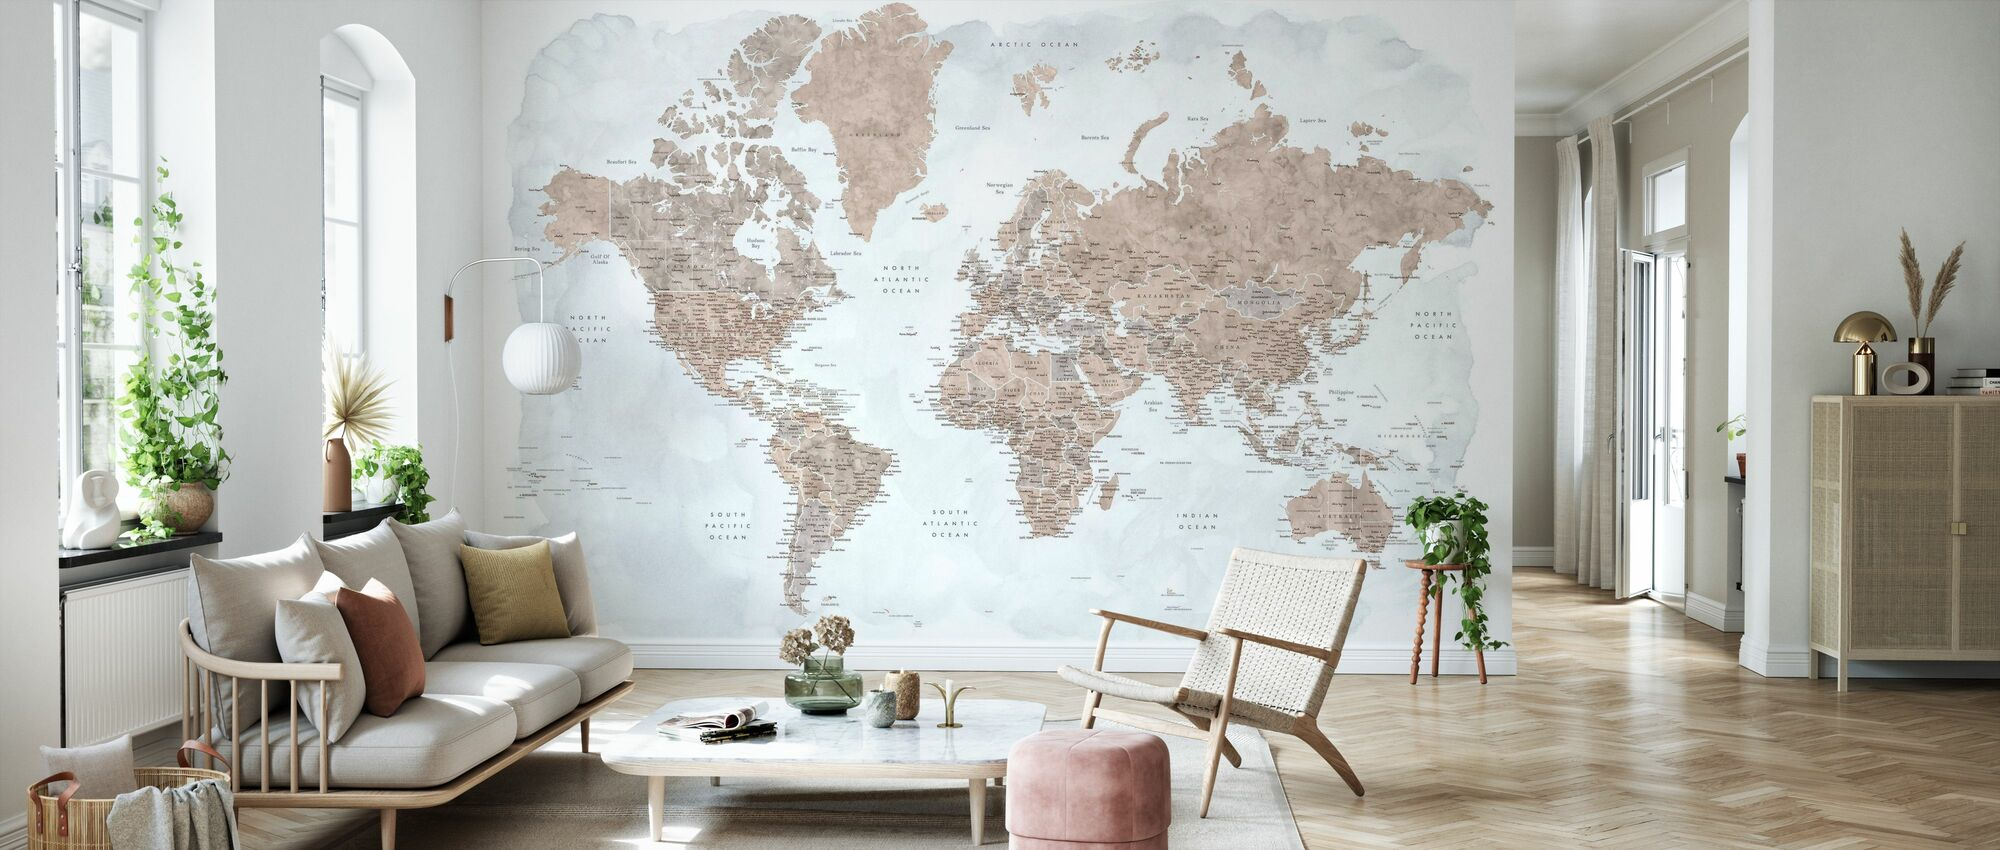 World Map with Cities - Wallpaper - Living Room